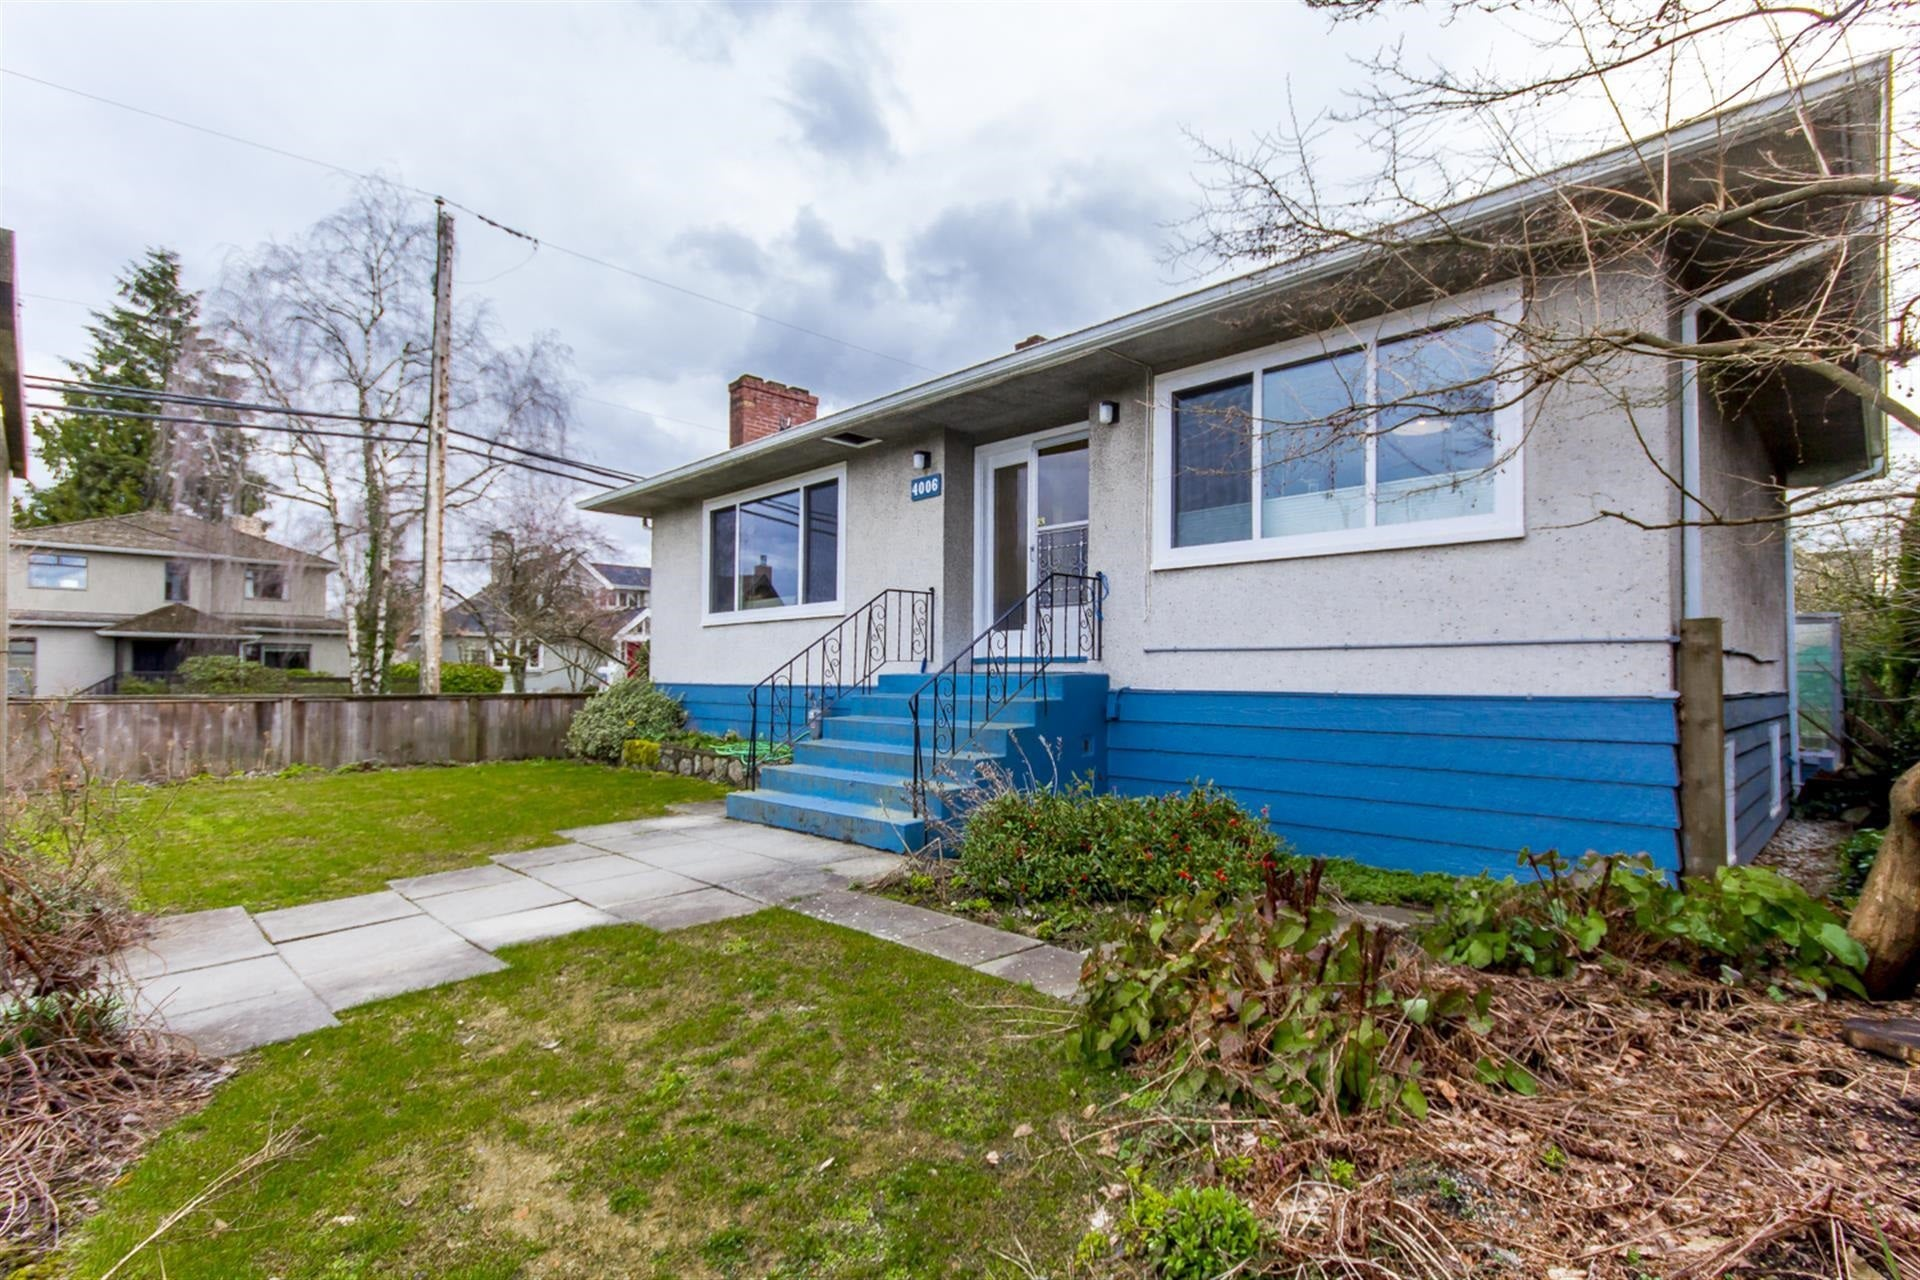 4006 W 28TH AVENUE - Dunbar House/Single Family for sale, 4 Bedrooms (R2614563) - #11